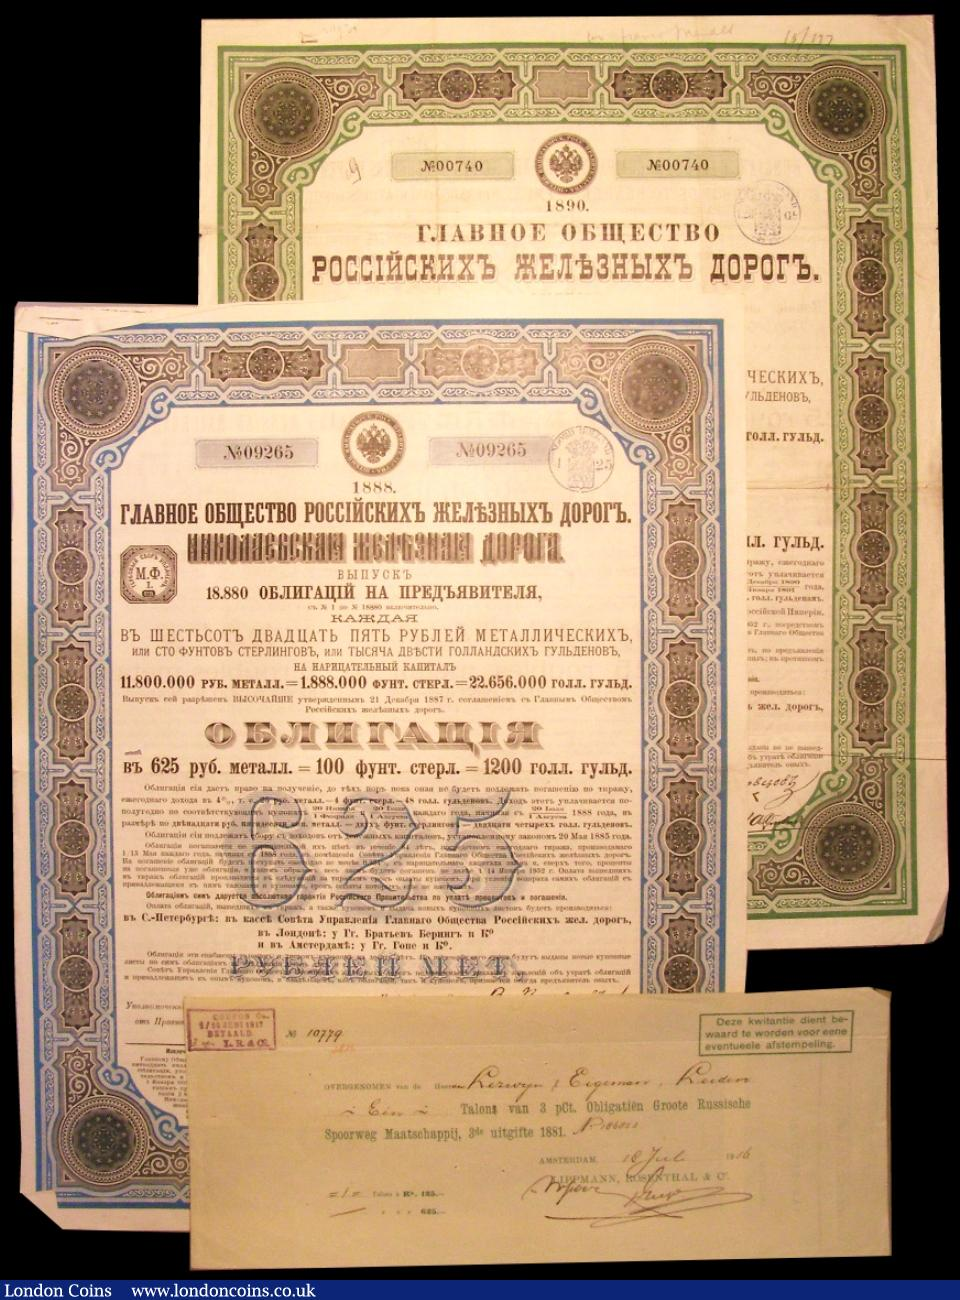 Russia, Grand Russian Railway, 8 bonds, 1859 Loan, bond for 500 silver roubles, 1861 Loan, bond for £20, 1881 Loan, bonds for 2 x 125 roubles and 2 x 625 roubles, these all have ornate border depicting trains, trees, and allegorical figures, also 1888 Loan, bond for 625 roubles, and 1890 Loan bond for 625 roubles, most with coupons, F-VF. (8). : Bonds and Shares : Auction 129 : Lot 82